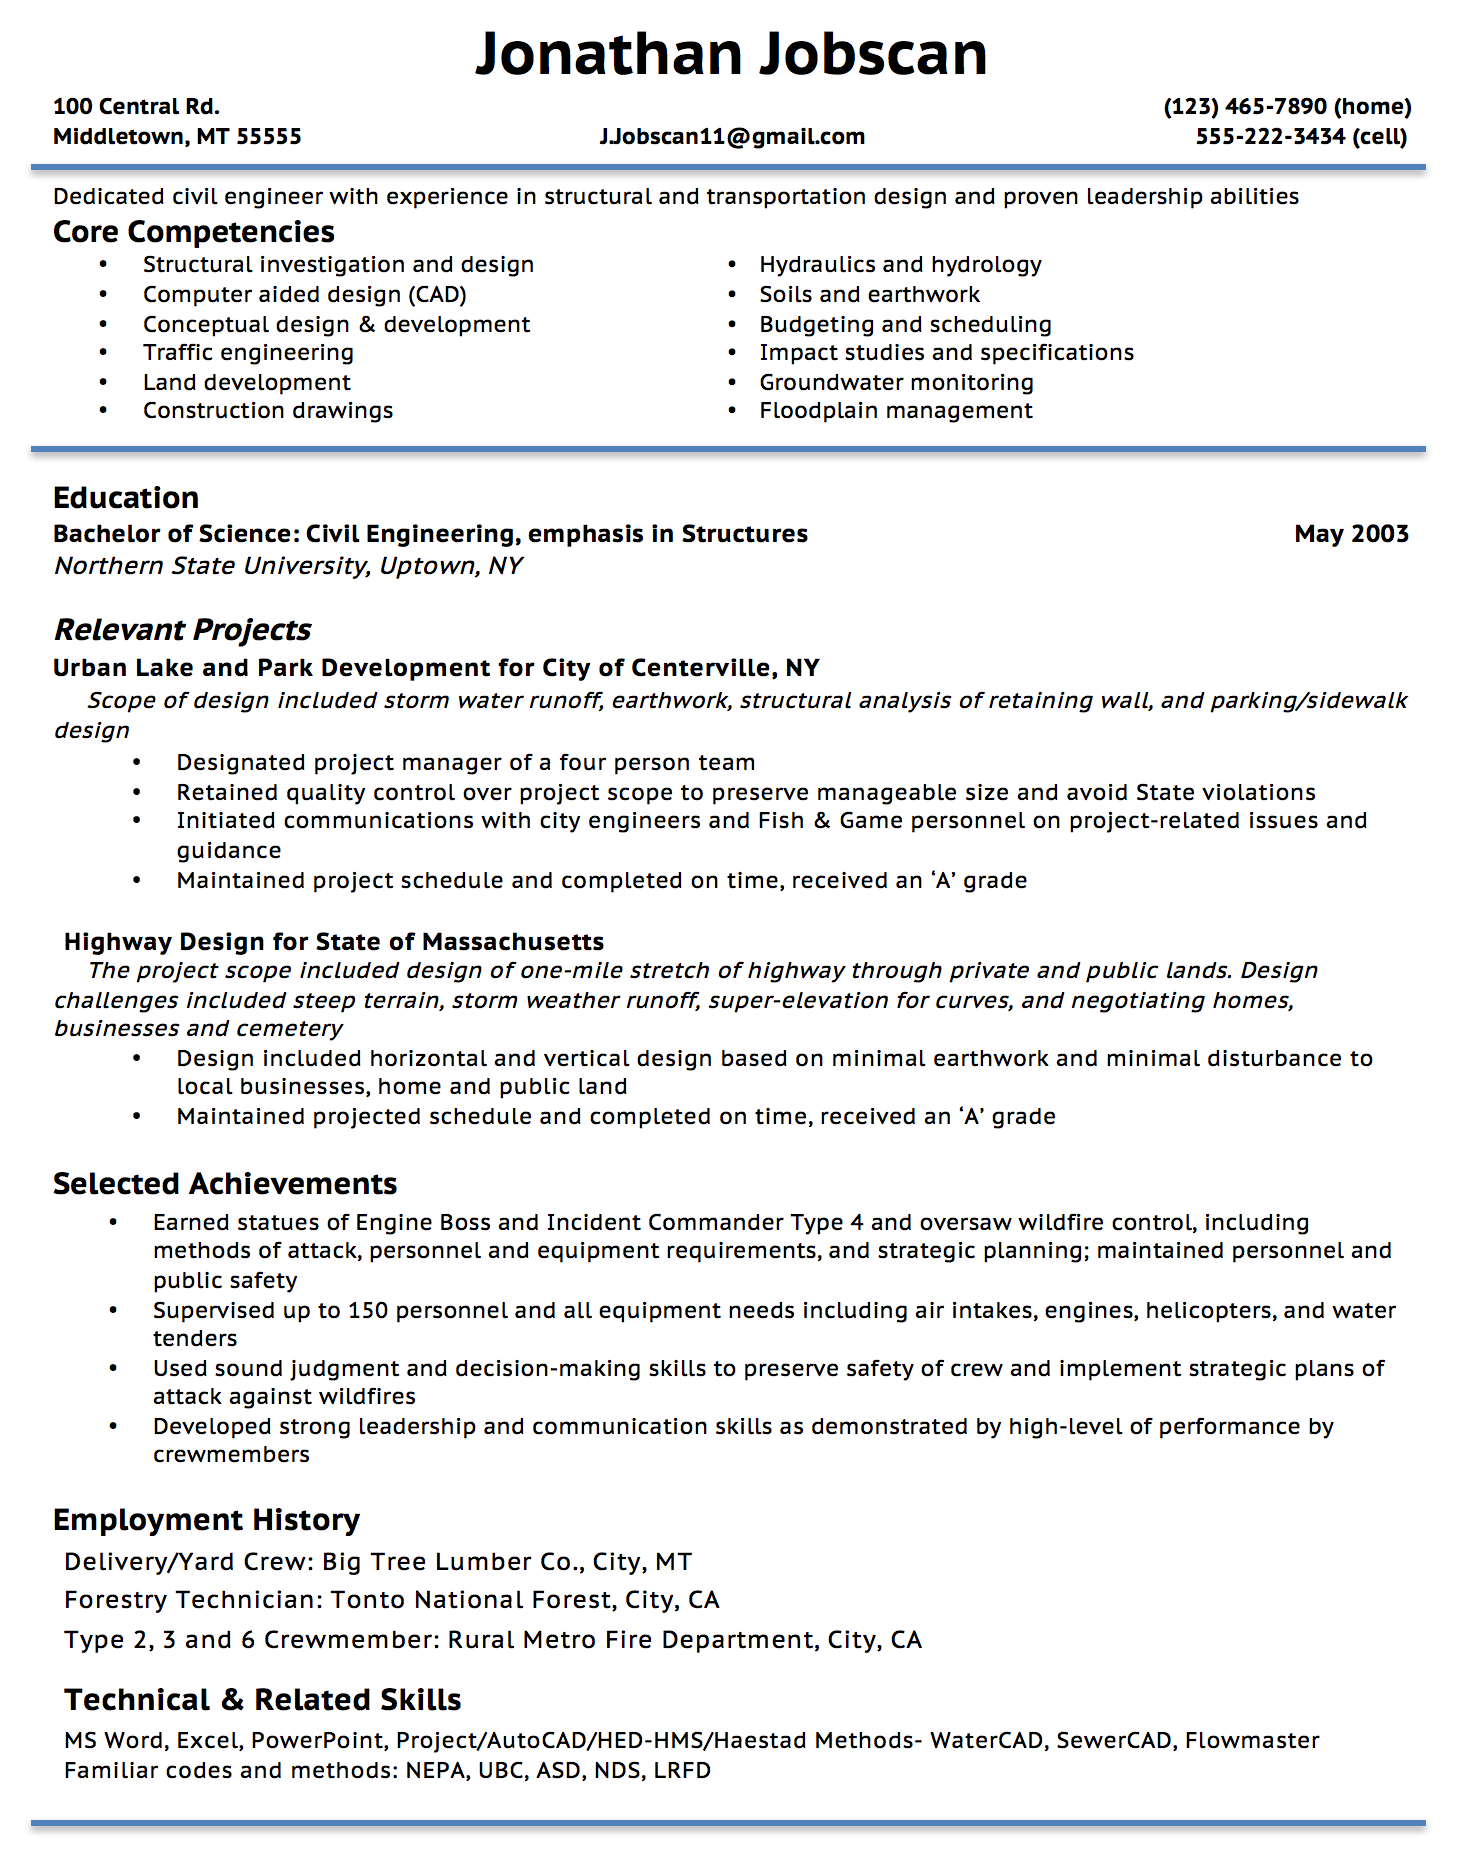 Opposenewapstandardsus  Seductive Resume Writing Guide  Jobscan With Goodlooking Example Of A Functional Resume Format With Lovely Executive Resume Writing Also What Is The Best Font For Resumes In Addition How Long Can A Resume Be And References In A Resume As Well As High School Resume Format Additionally Verbs To Use In Resume From Jobscanco With Opposenewapstandardsus  Goodlooking Resume Writing Guide  Jobscan With Lovely Example Of A Functional Resume Format And Seductive Executive Resume Writing Also What Is The Best Font For Resumes In Addition How Long Can A Resume Be From Jobscanco